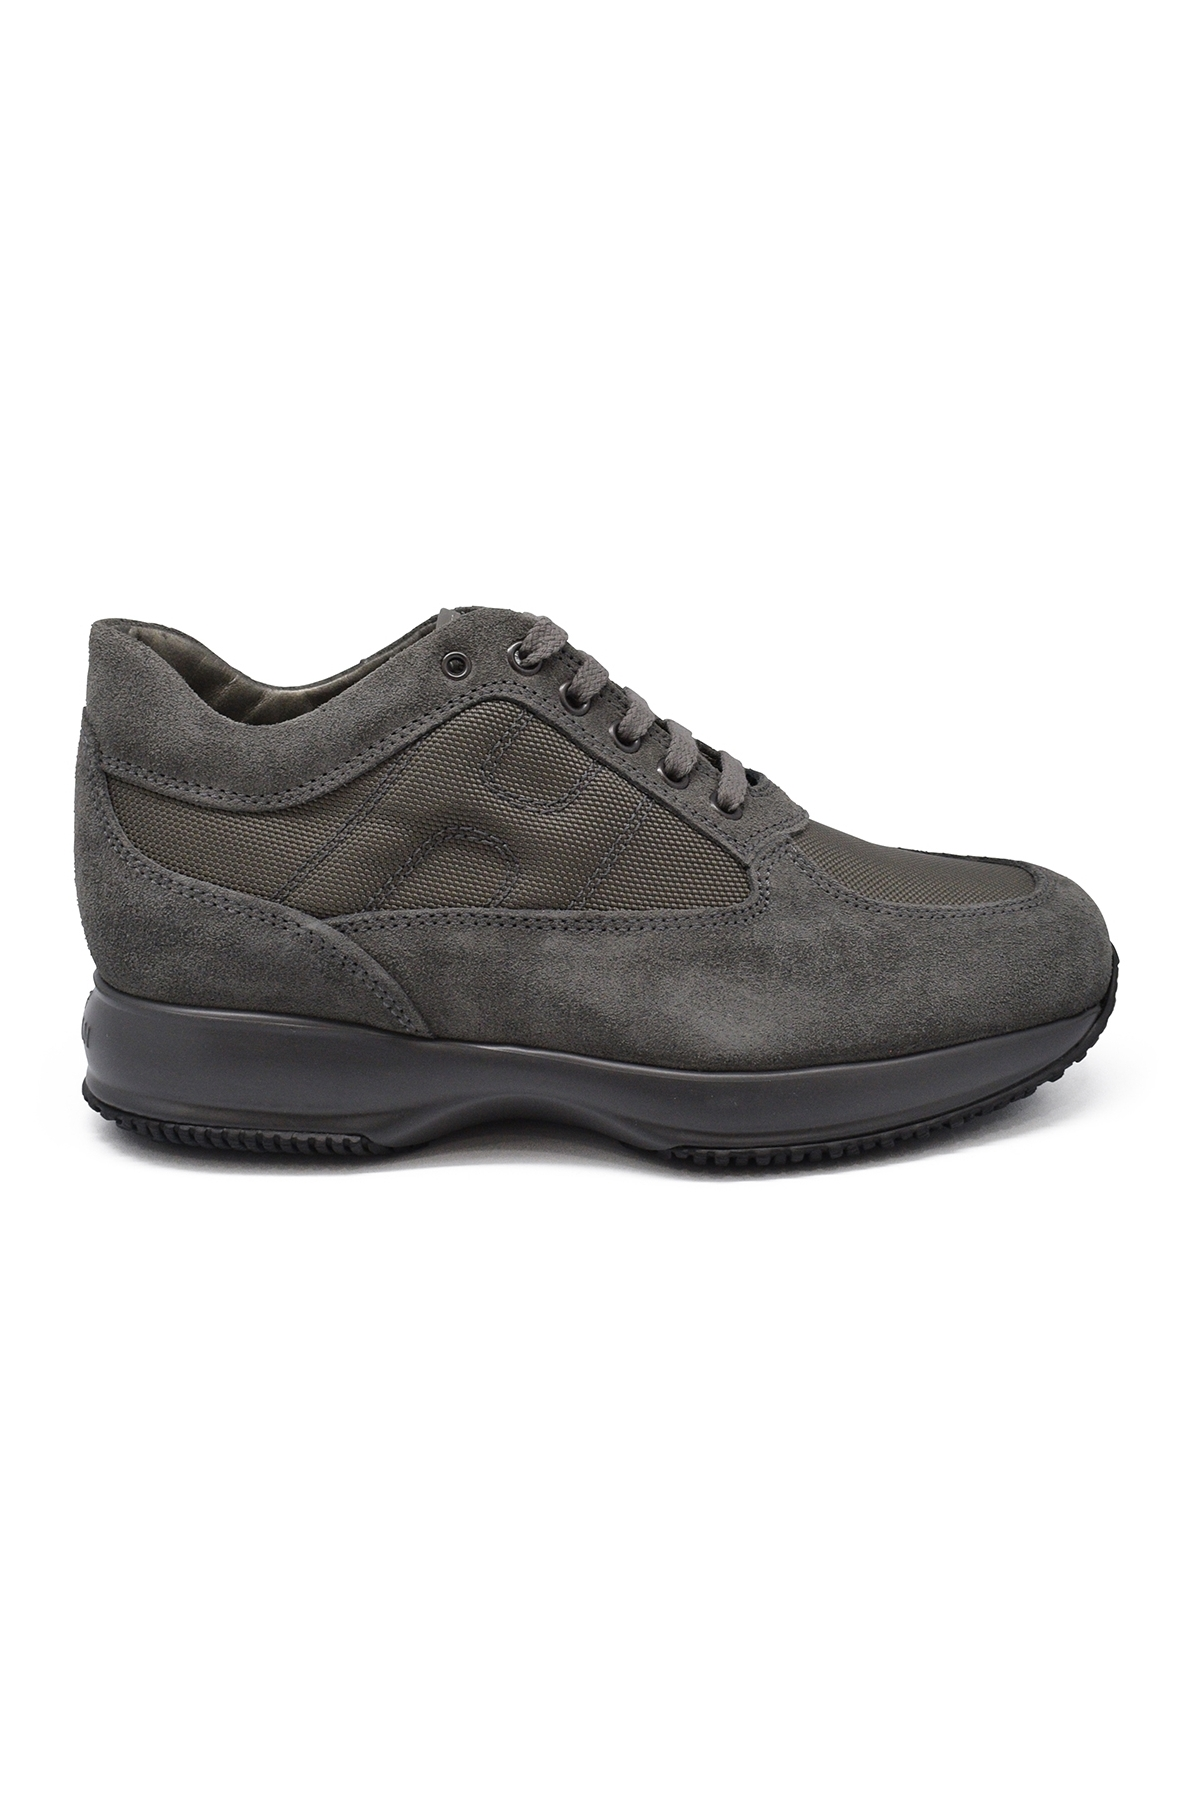 Hogan Interactive N20 sneakers in grey suede and brown technical fabric.